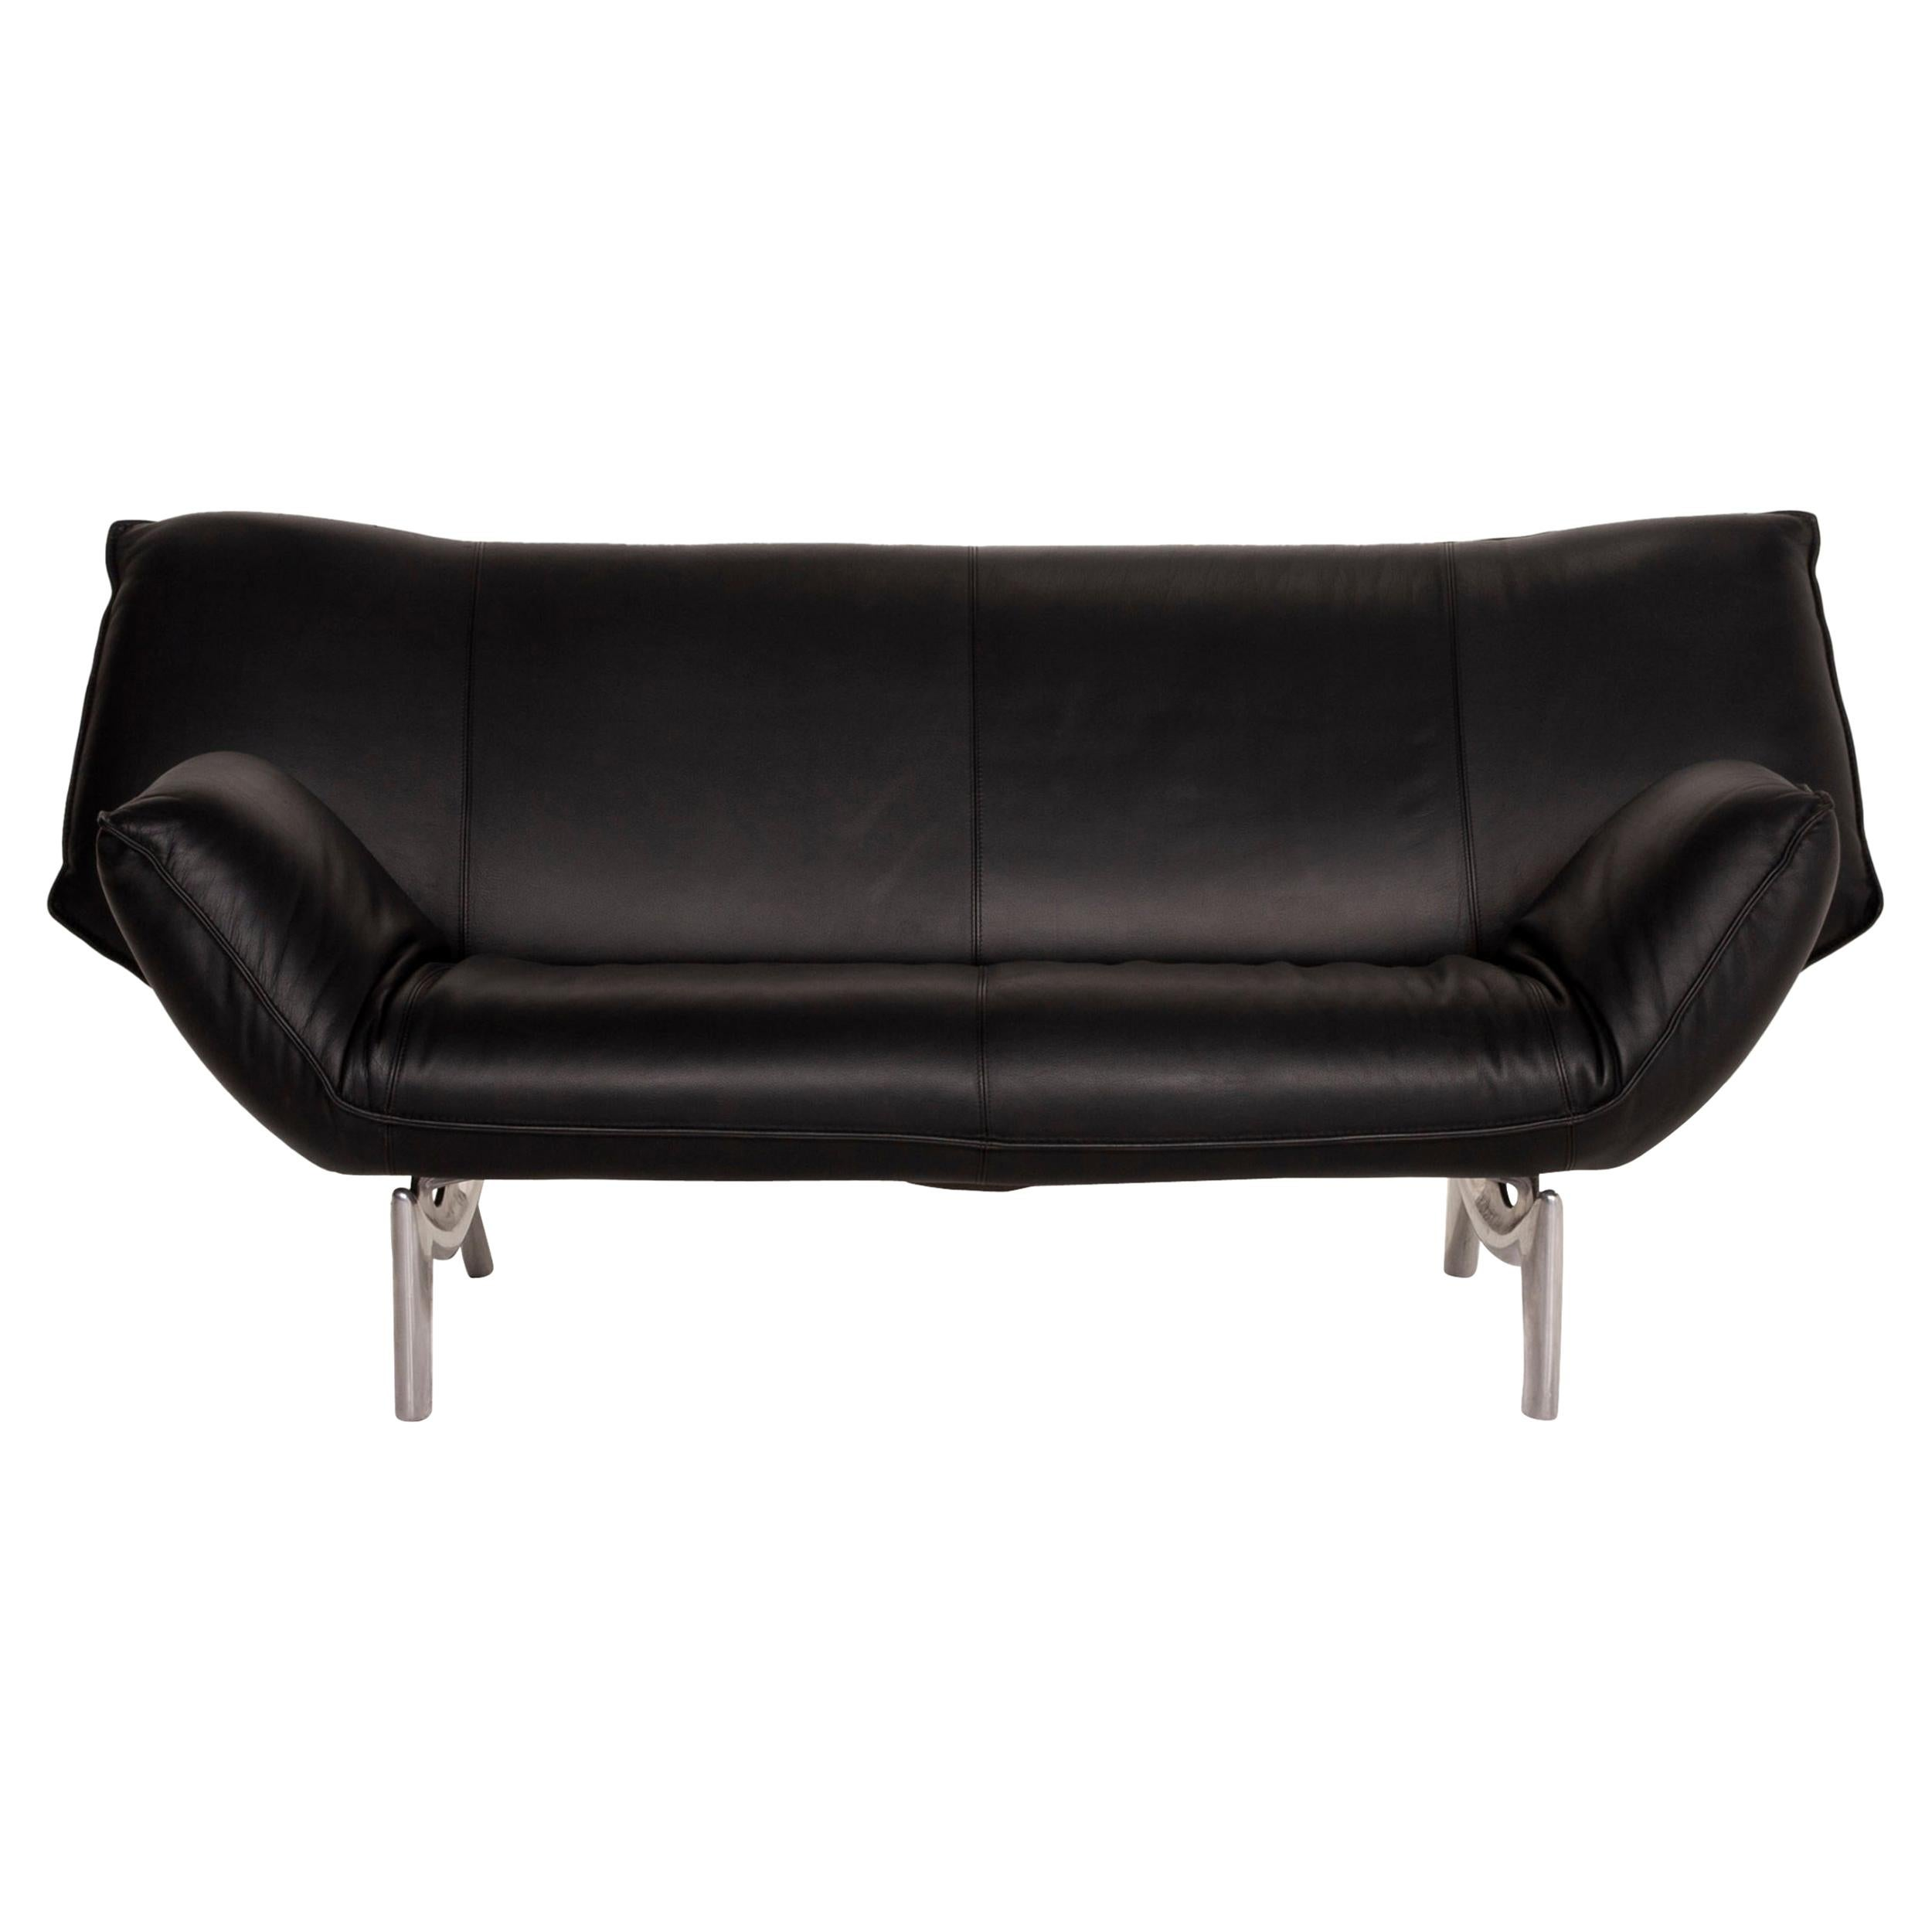 Leolux Tango Leather Sofa Black Two-Seater